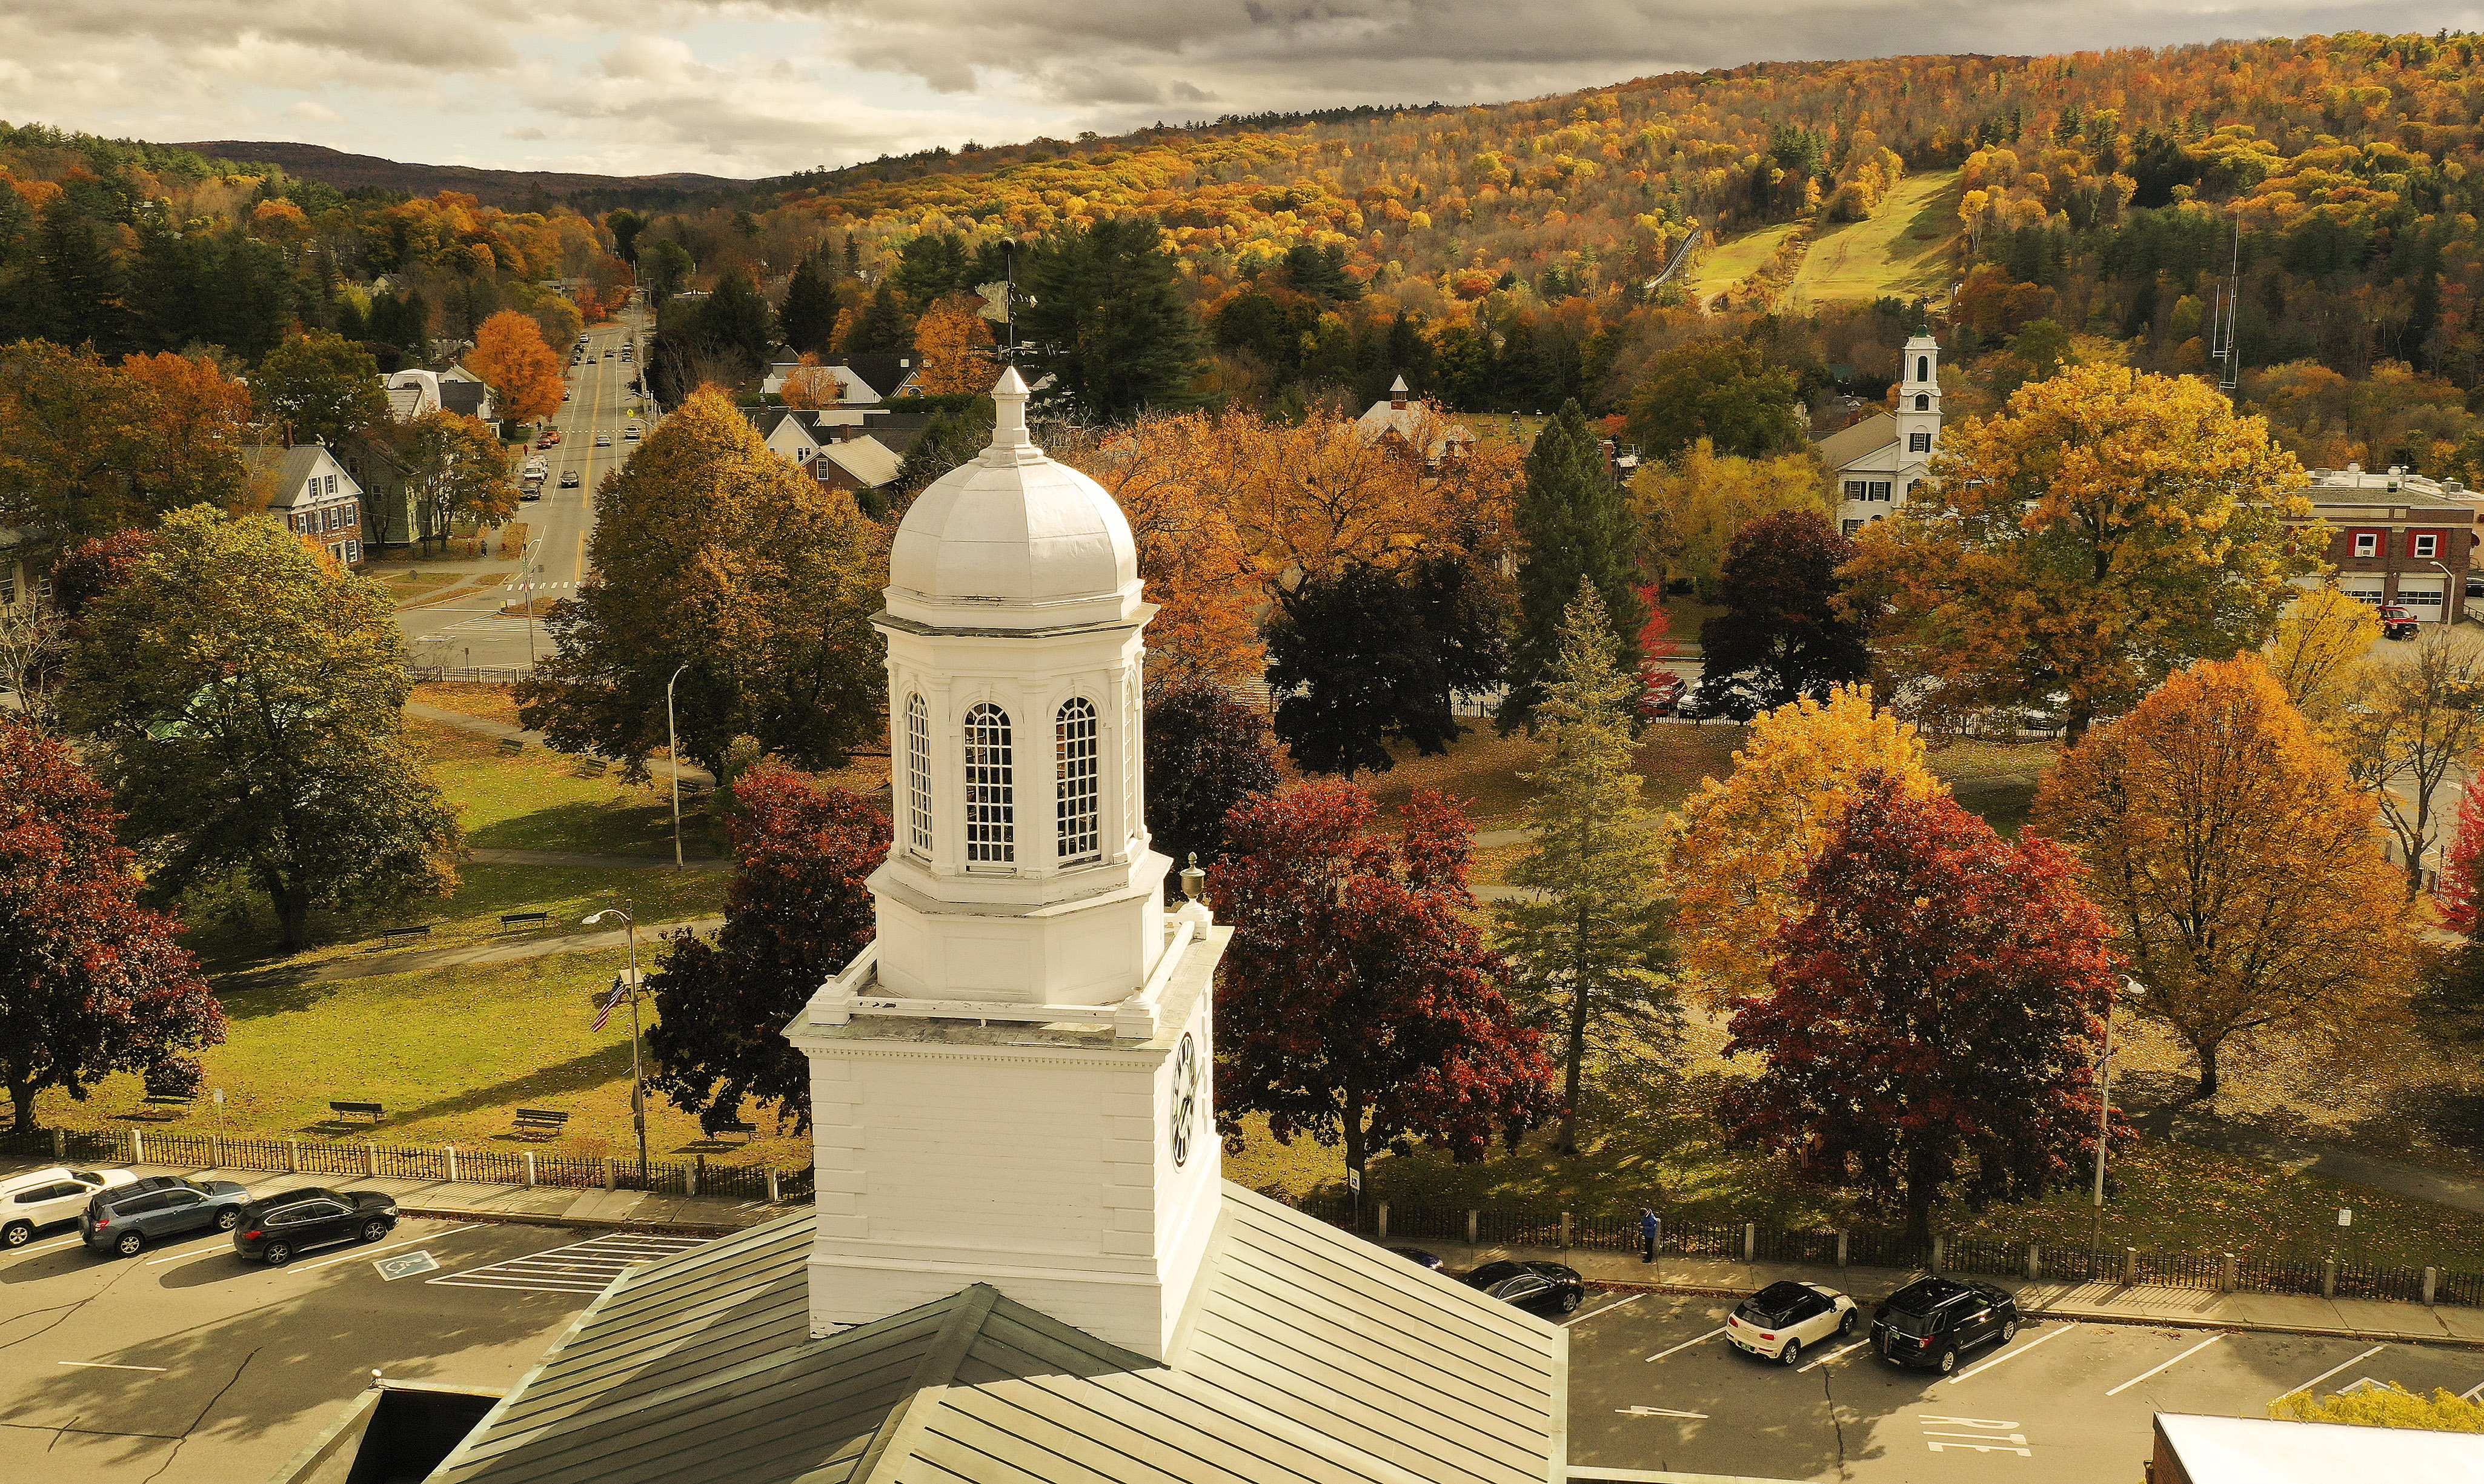 City Hall in Lebanon, New Hampshire is surrounded by Fall colors on Friday, Oct. 18, 2019.